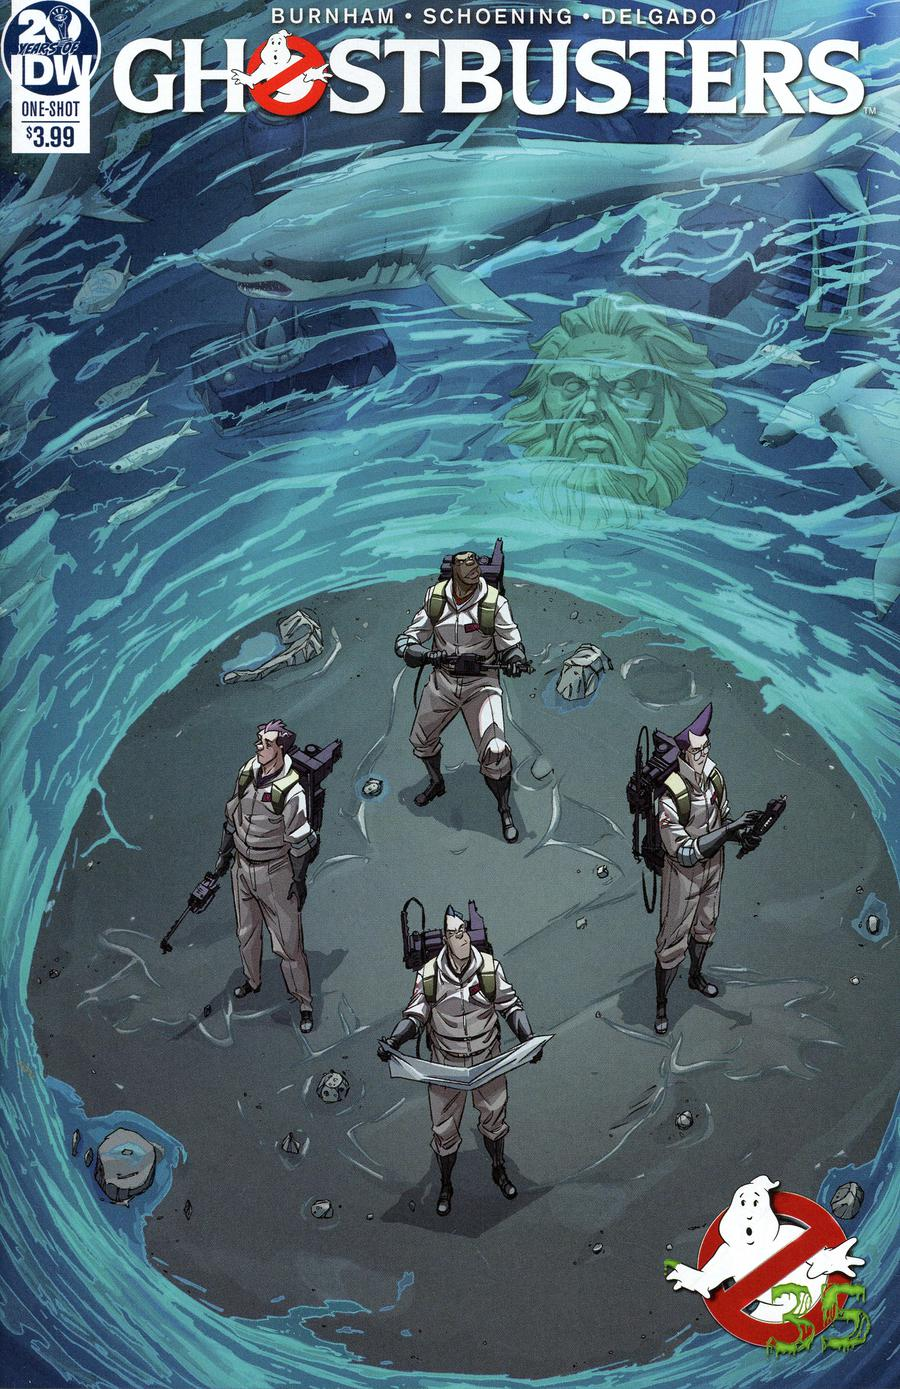 Ghostbusters 35th Anniversary Ghostbusters Cover A Regular Dan Schoening Cover